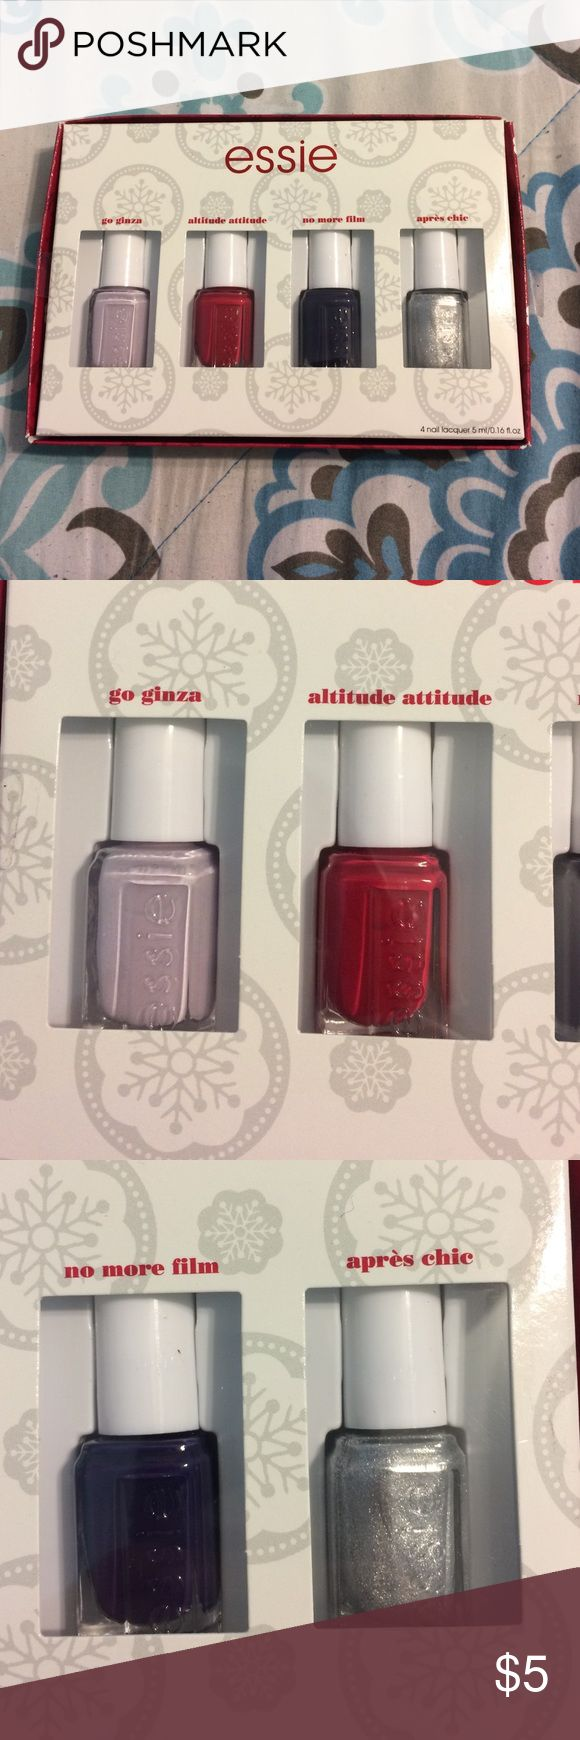 Essie Nail Polish Quad Brand new. Gift set. Go ginza. Altitude attitude. No more film. And apres chic. Please don't hesitate to ask any questions you have. Don't like my price? Make an offer. 30% OFF ANY BUNDLE!! Essie Makeup